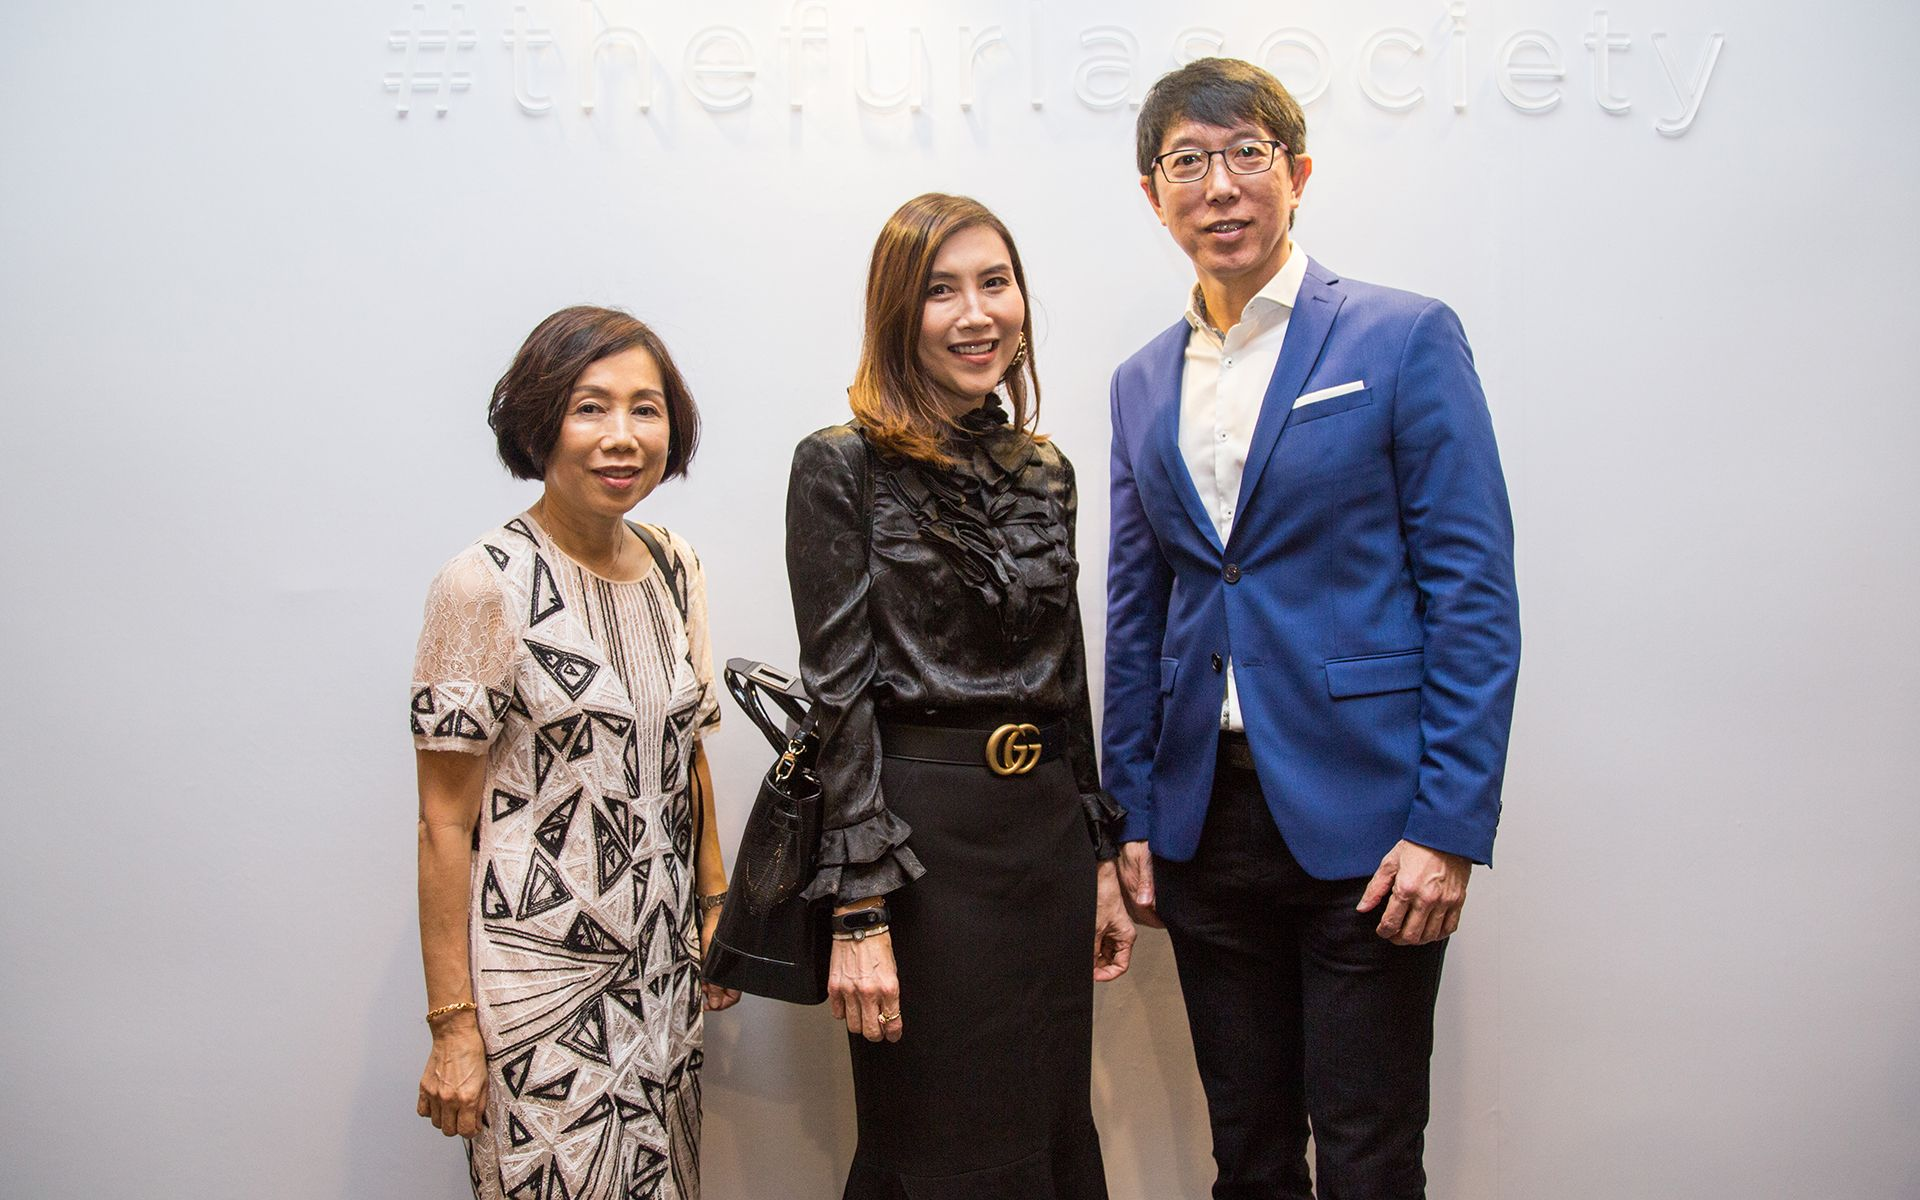 Lee Cheng Toh, Kathleen Chong and Ang Kee Ping